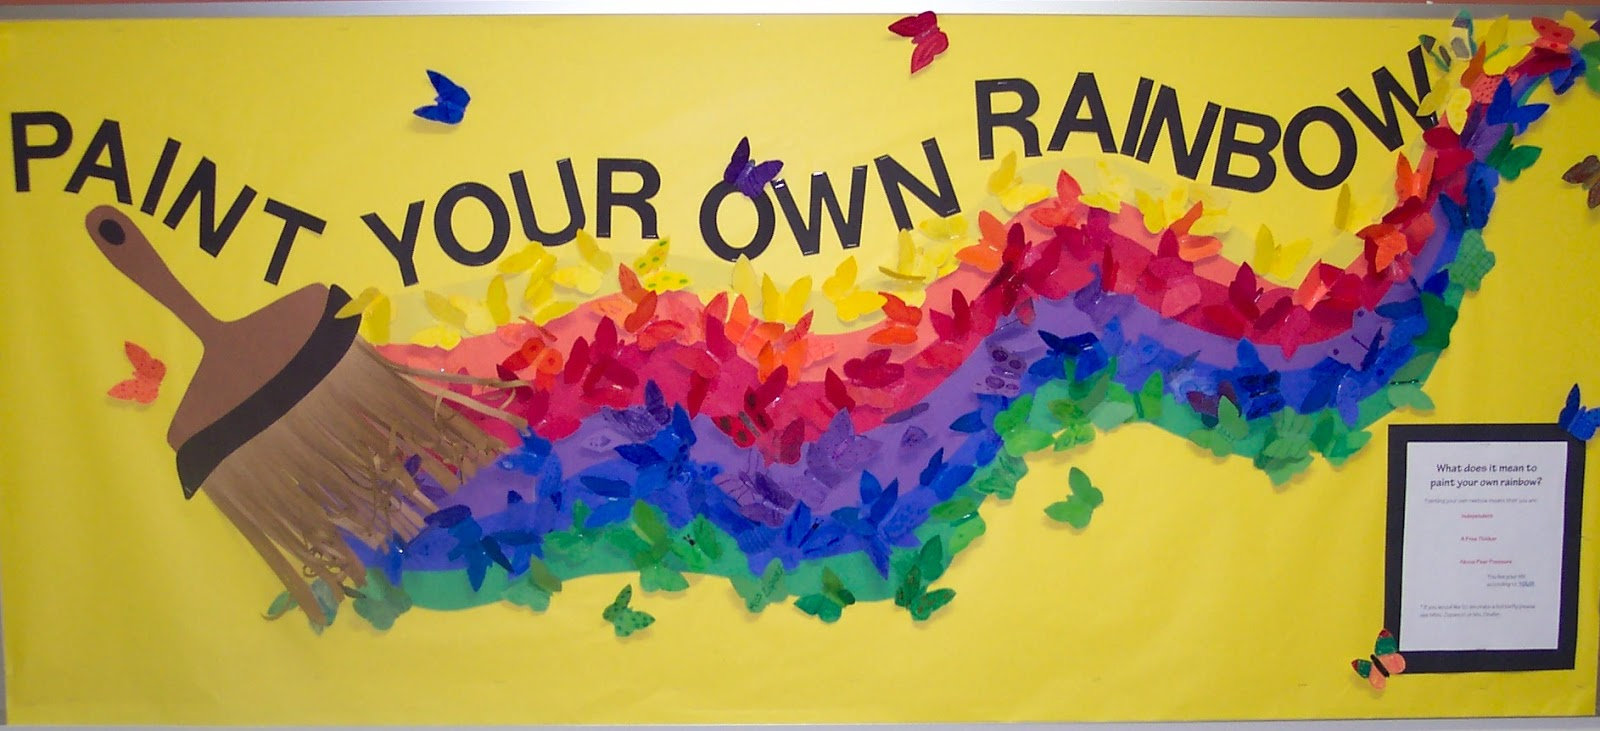 chin colle paint your own rainbow